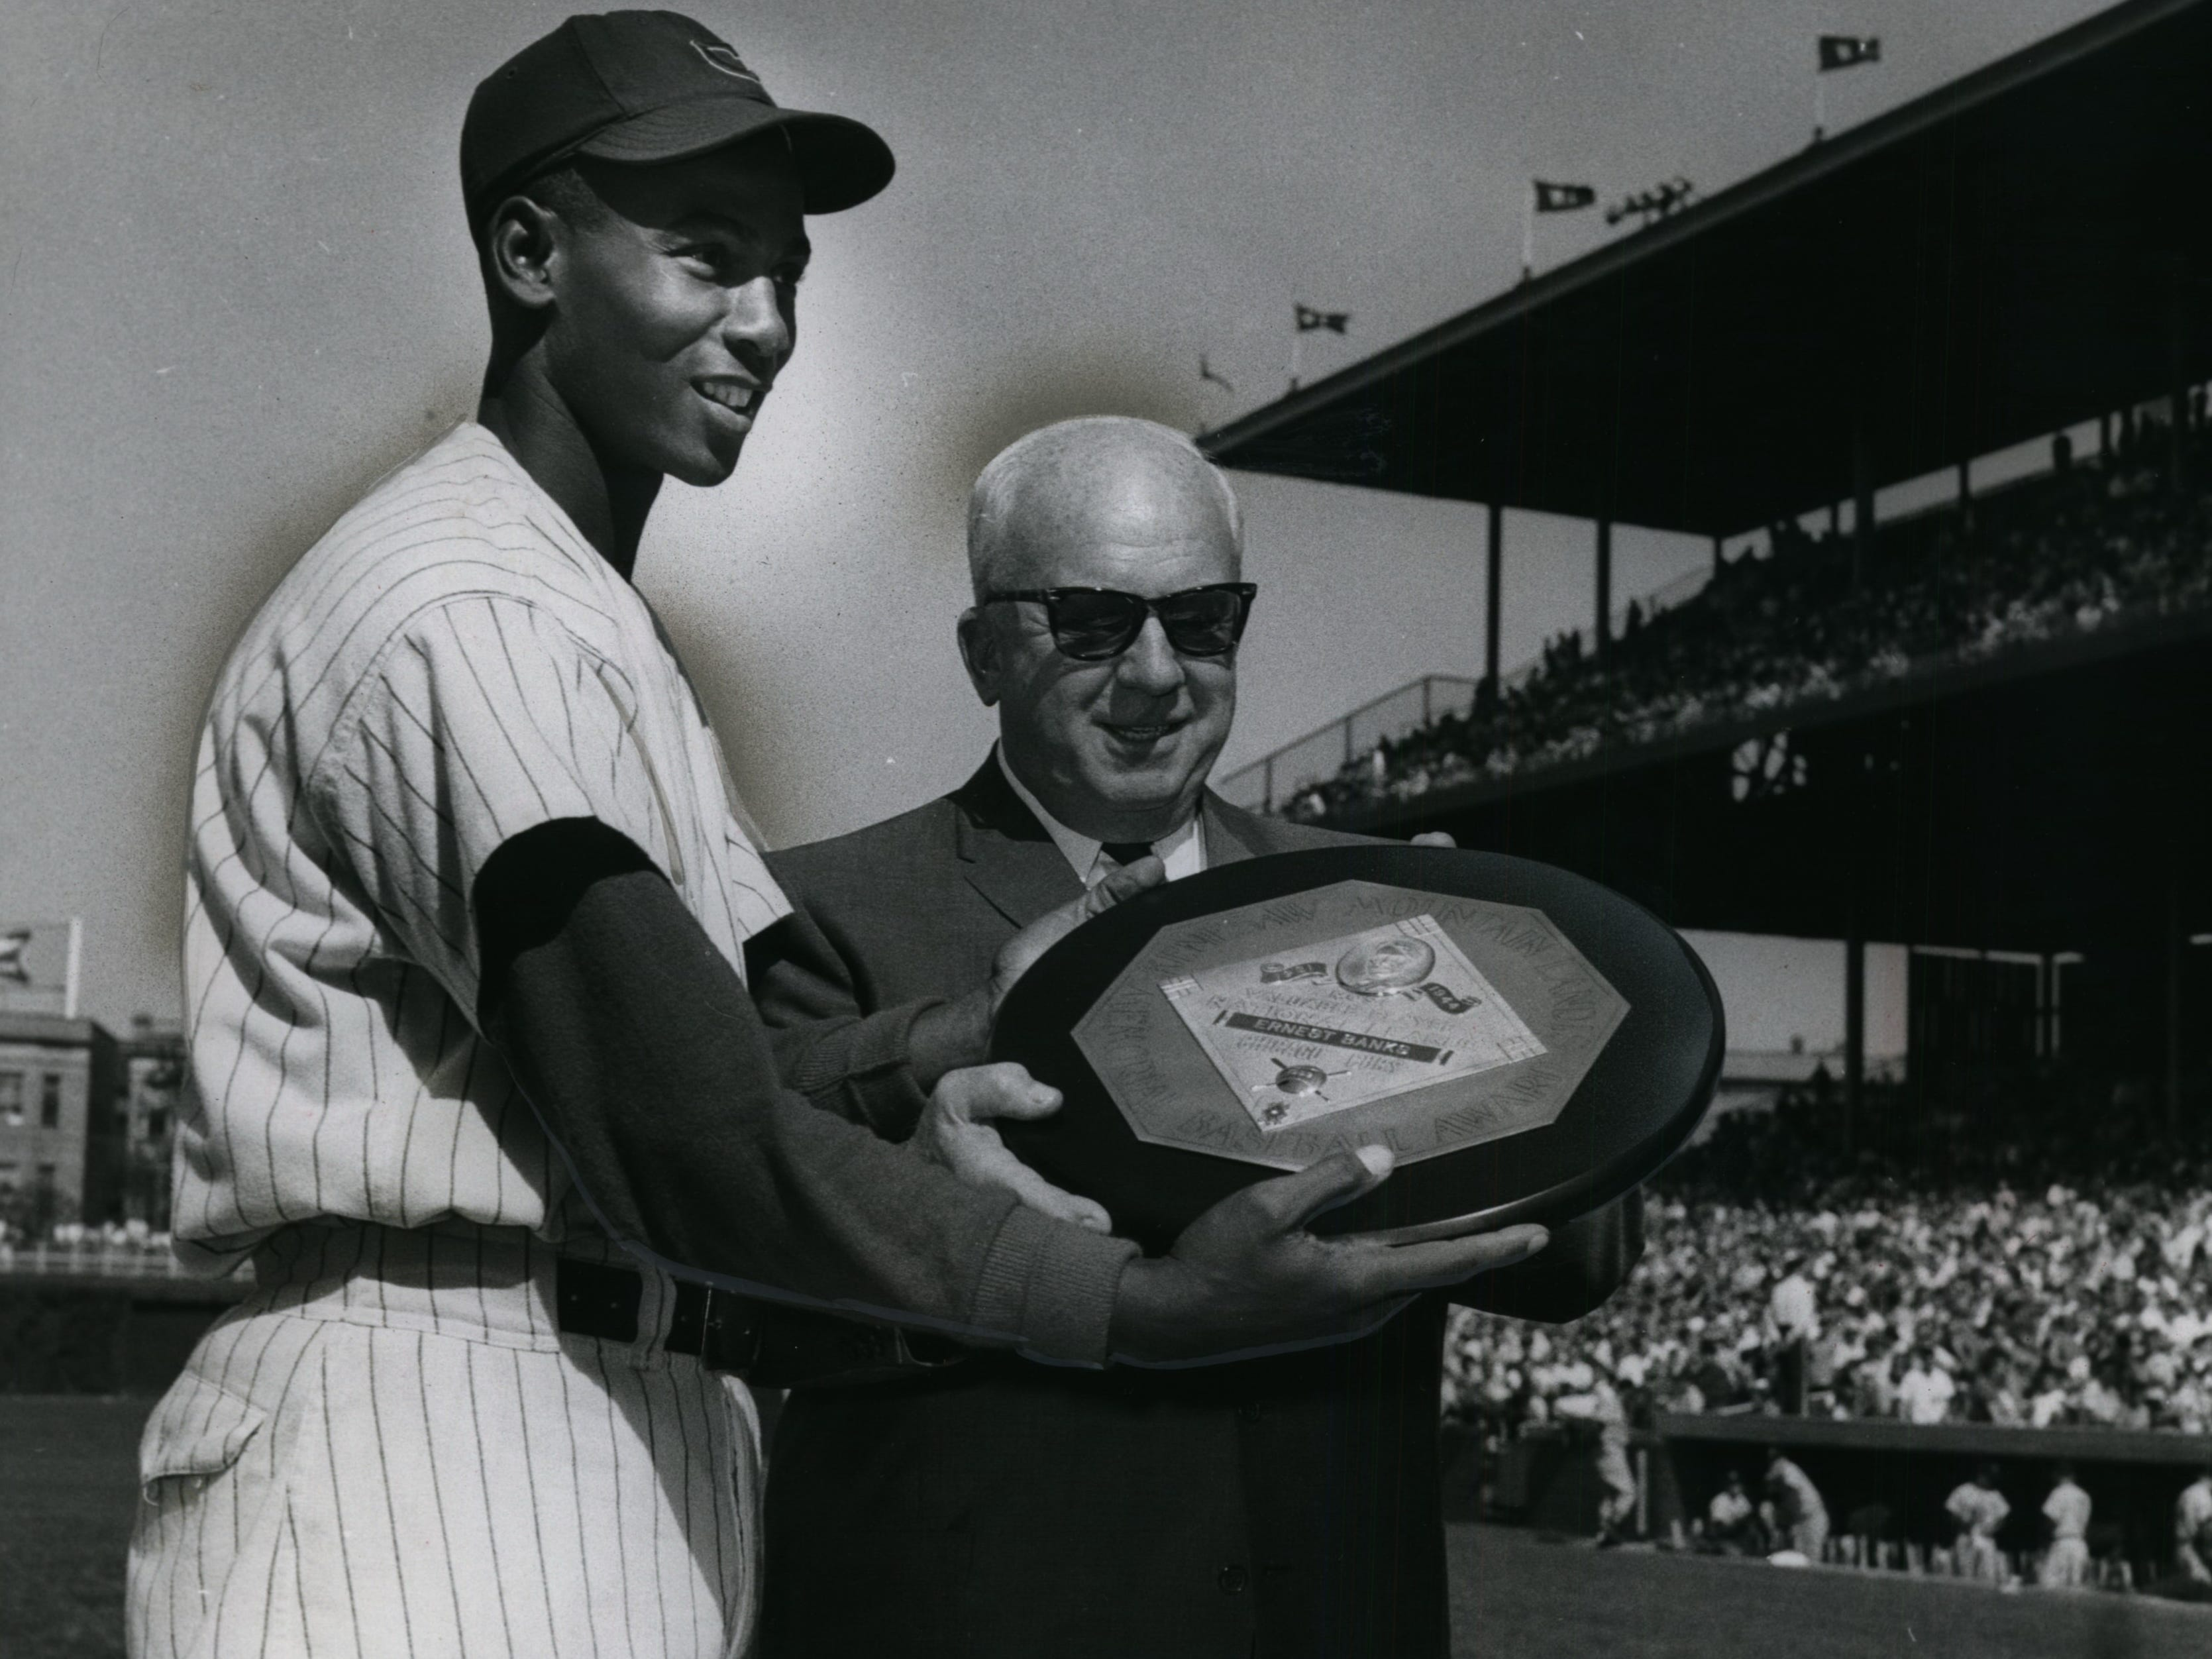 Chicago Cubs star Ernie Banks receives the plaque for being named the 1959 National League Most Valuable Player from NL President Warren Giles at Wrigley Field on May 16, 1960. Banks was the first player in NL history to win the MVP two years in a row.